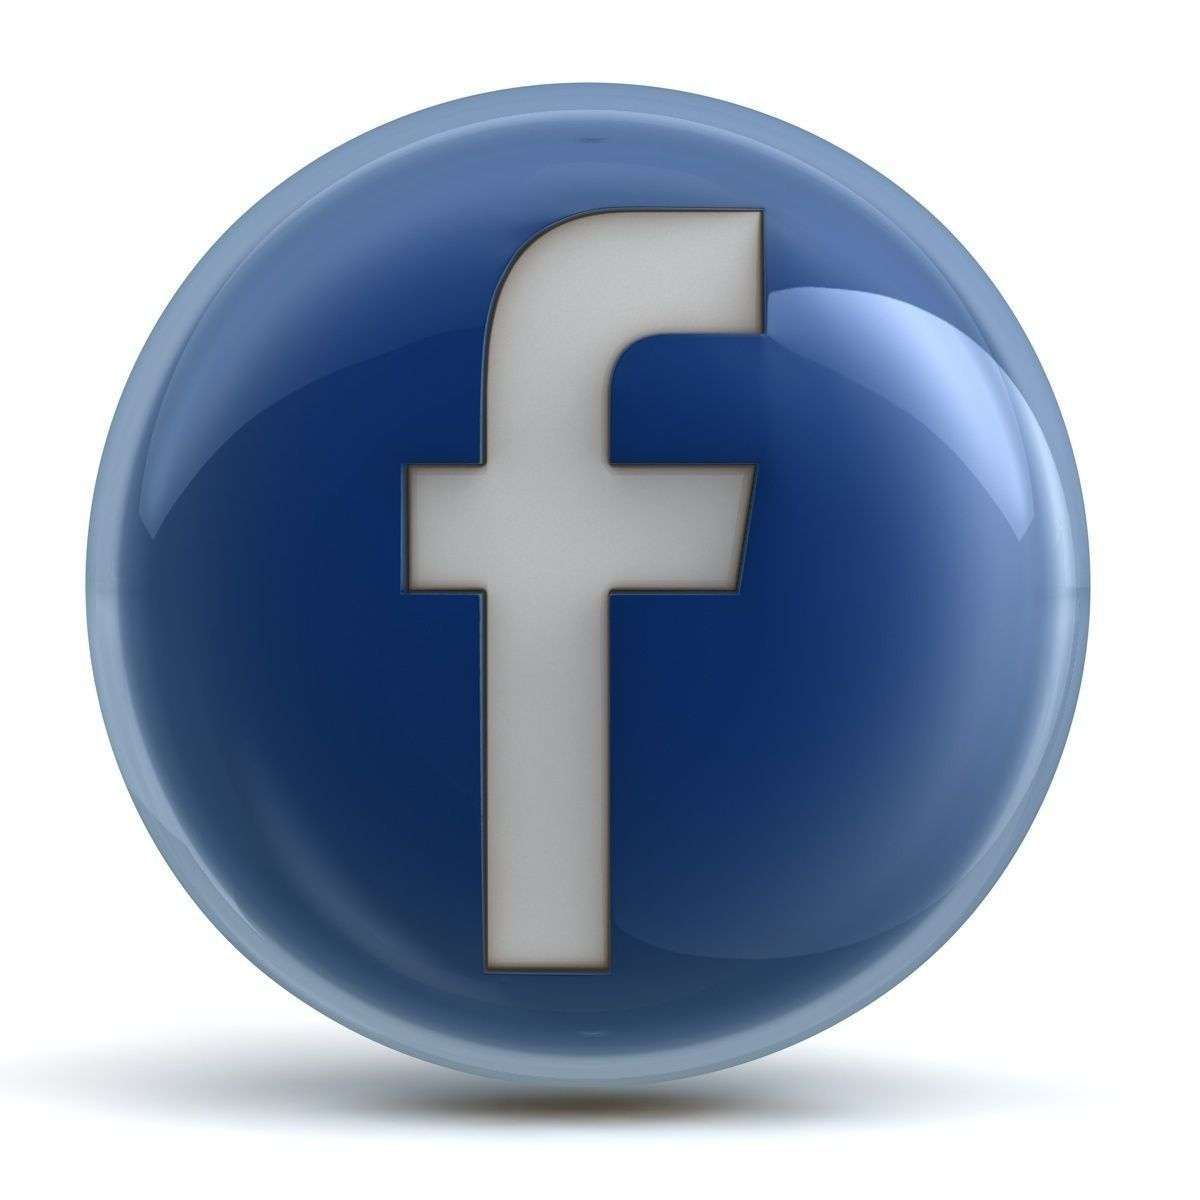 facebook-icon-3d-model-obj-3ds-fbx-c4d.j